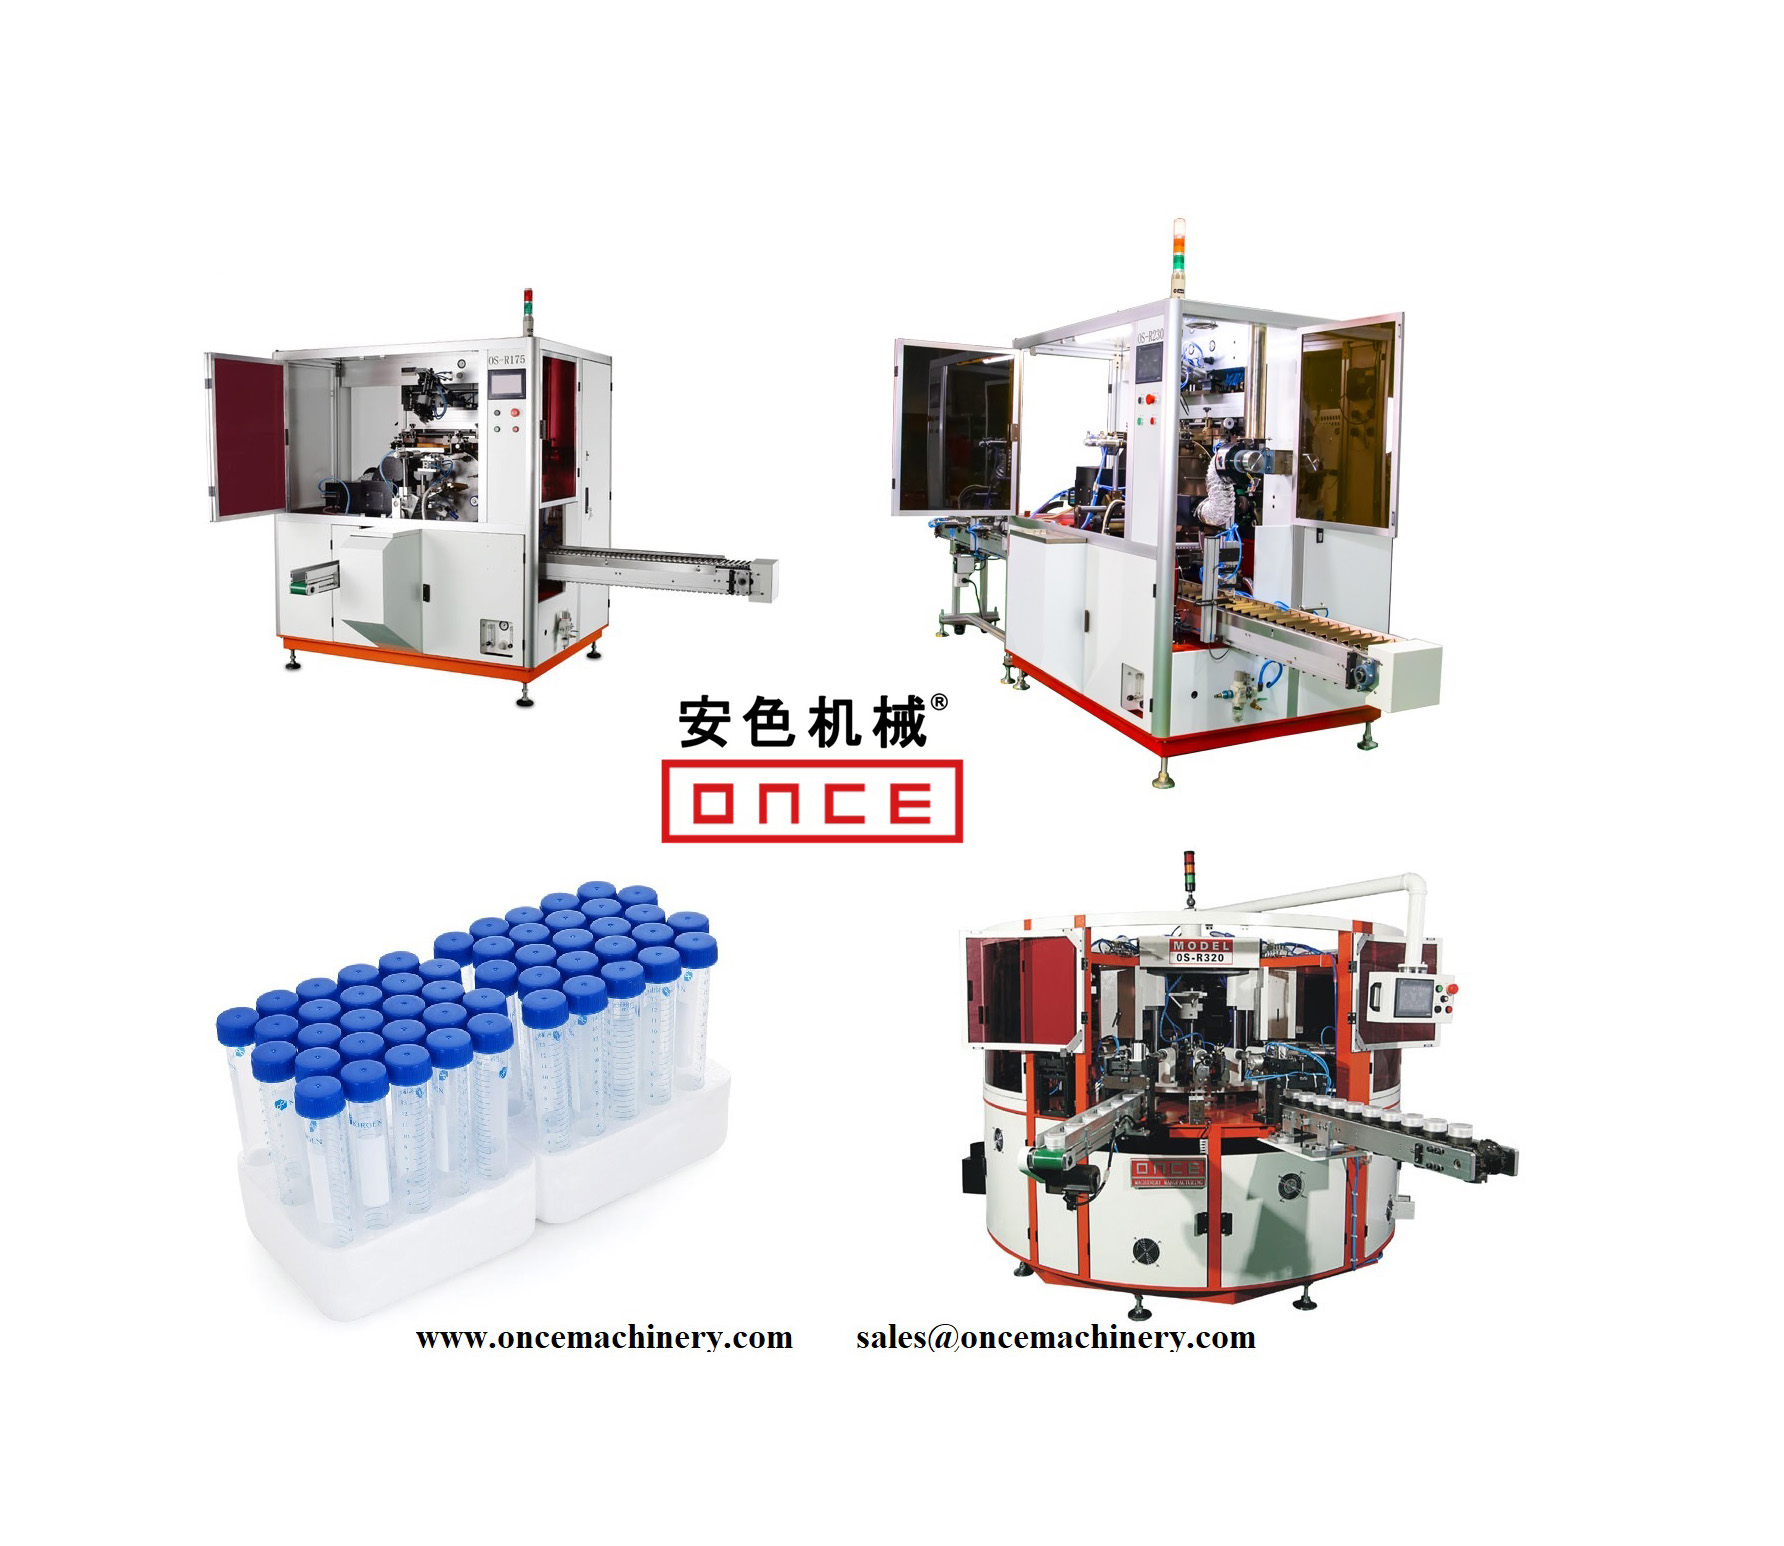 Huayu Automation Manufacture Centrifuge Tube Screen Printing Machines for Medical Medicine